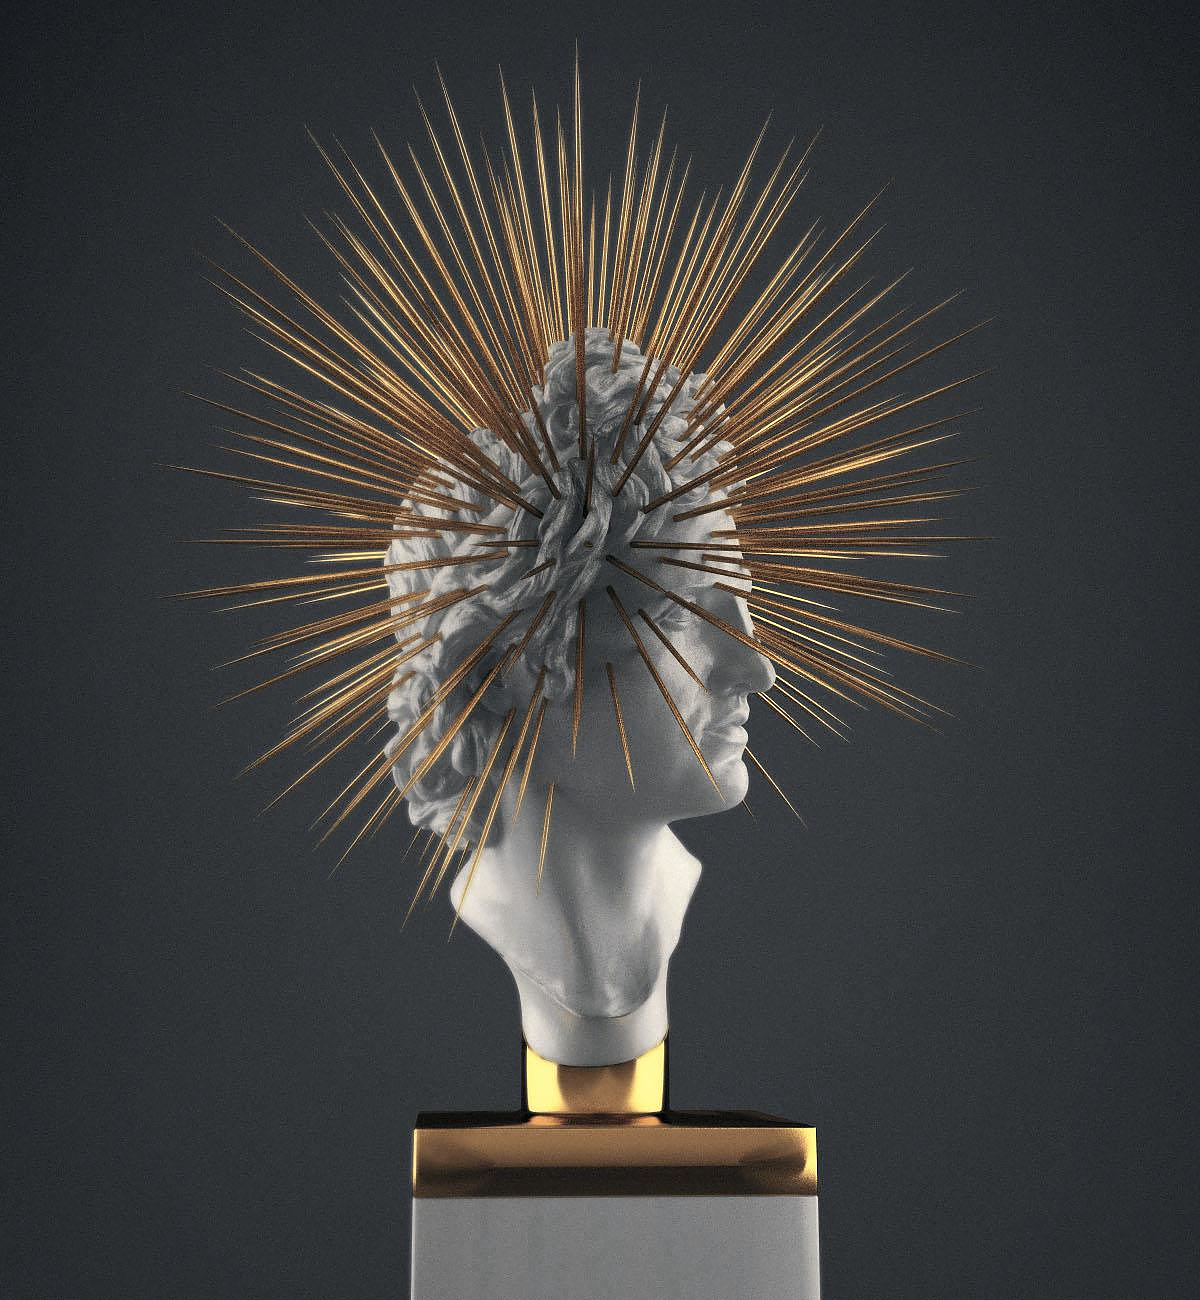 Creative Macabre Sculptures By Hedi Xandt. - Design Is This